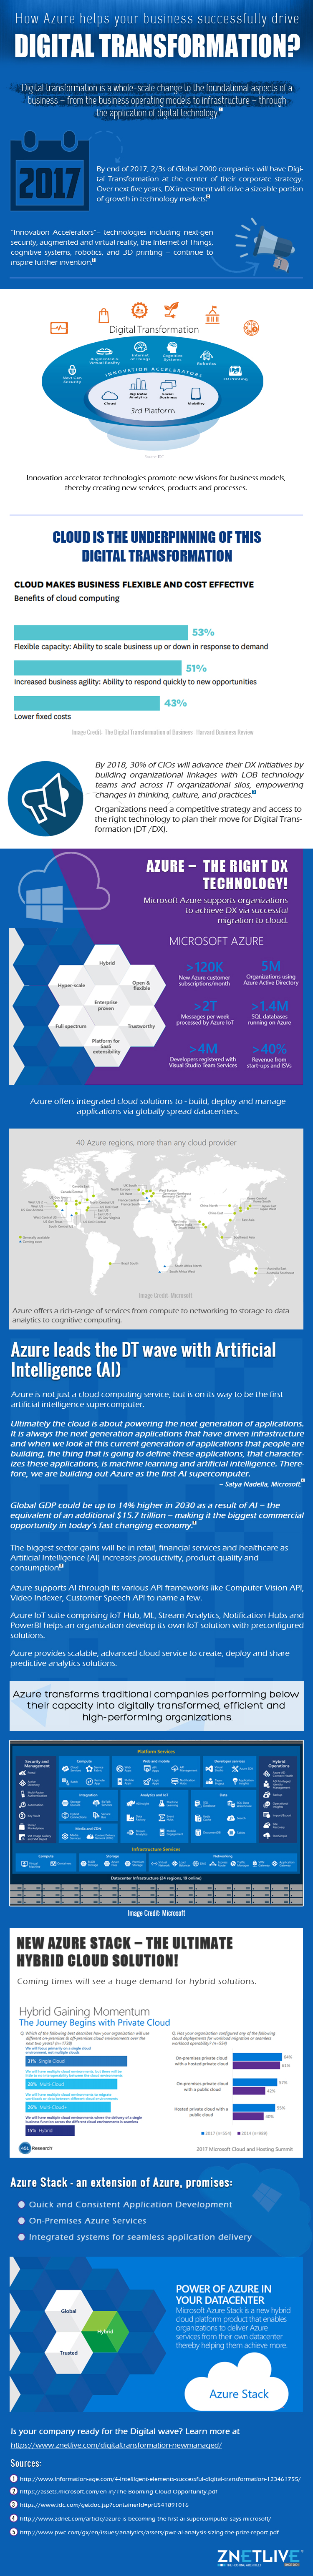 How Azure Helps Your Business Successfully Drive Digital Transformation 1